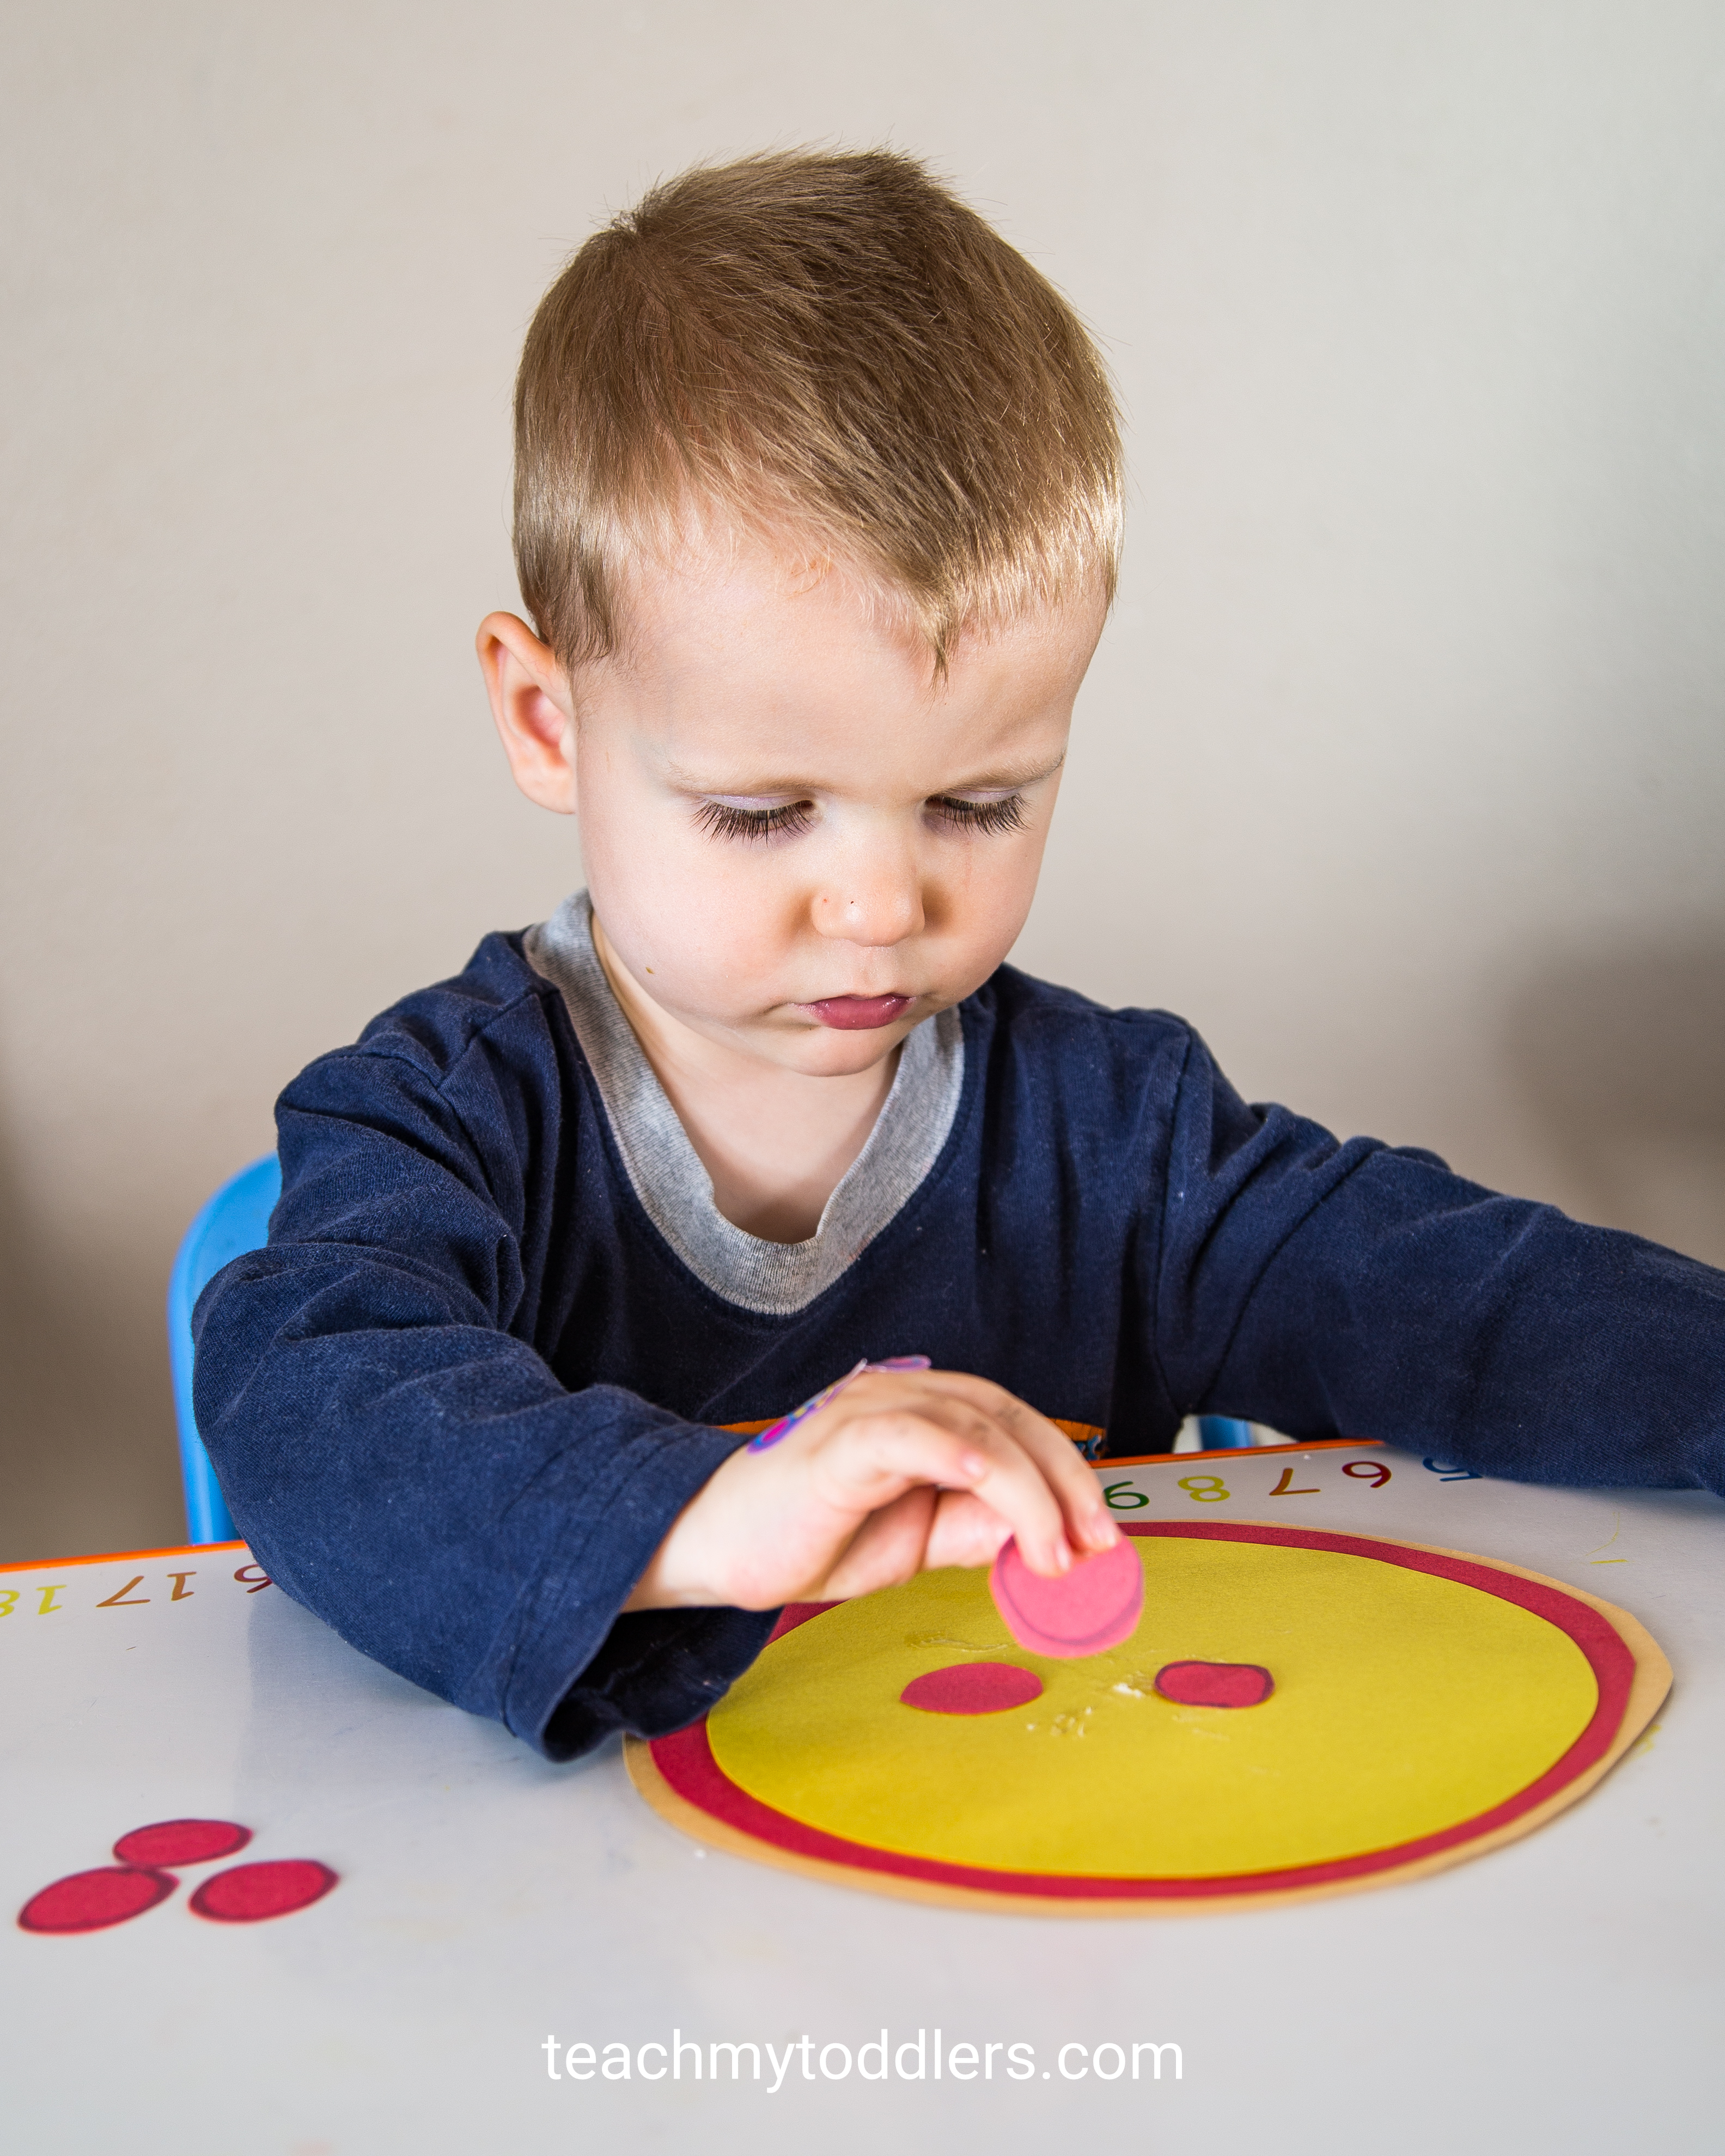 Learn how to use this fun pizza game to teach your toddlers shapes